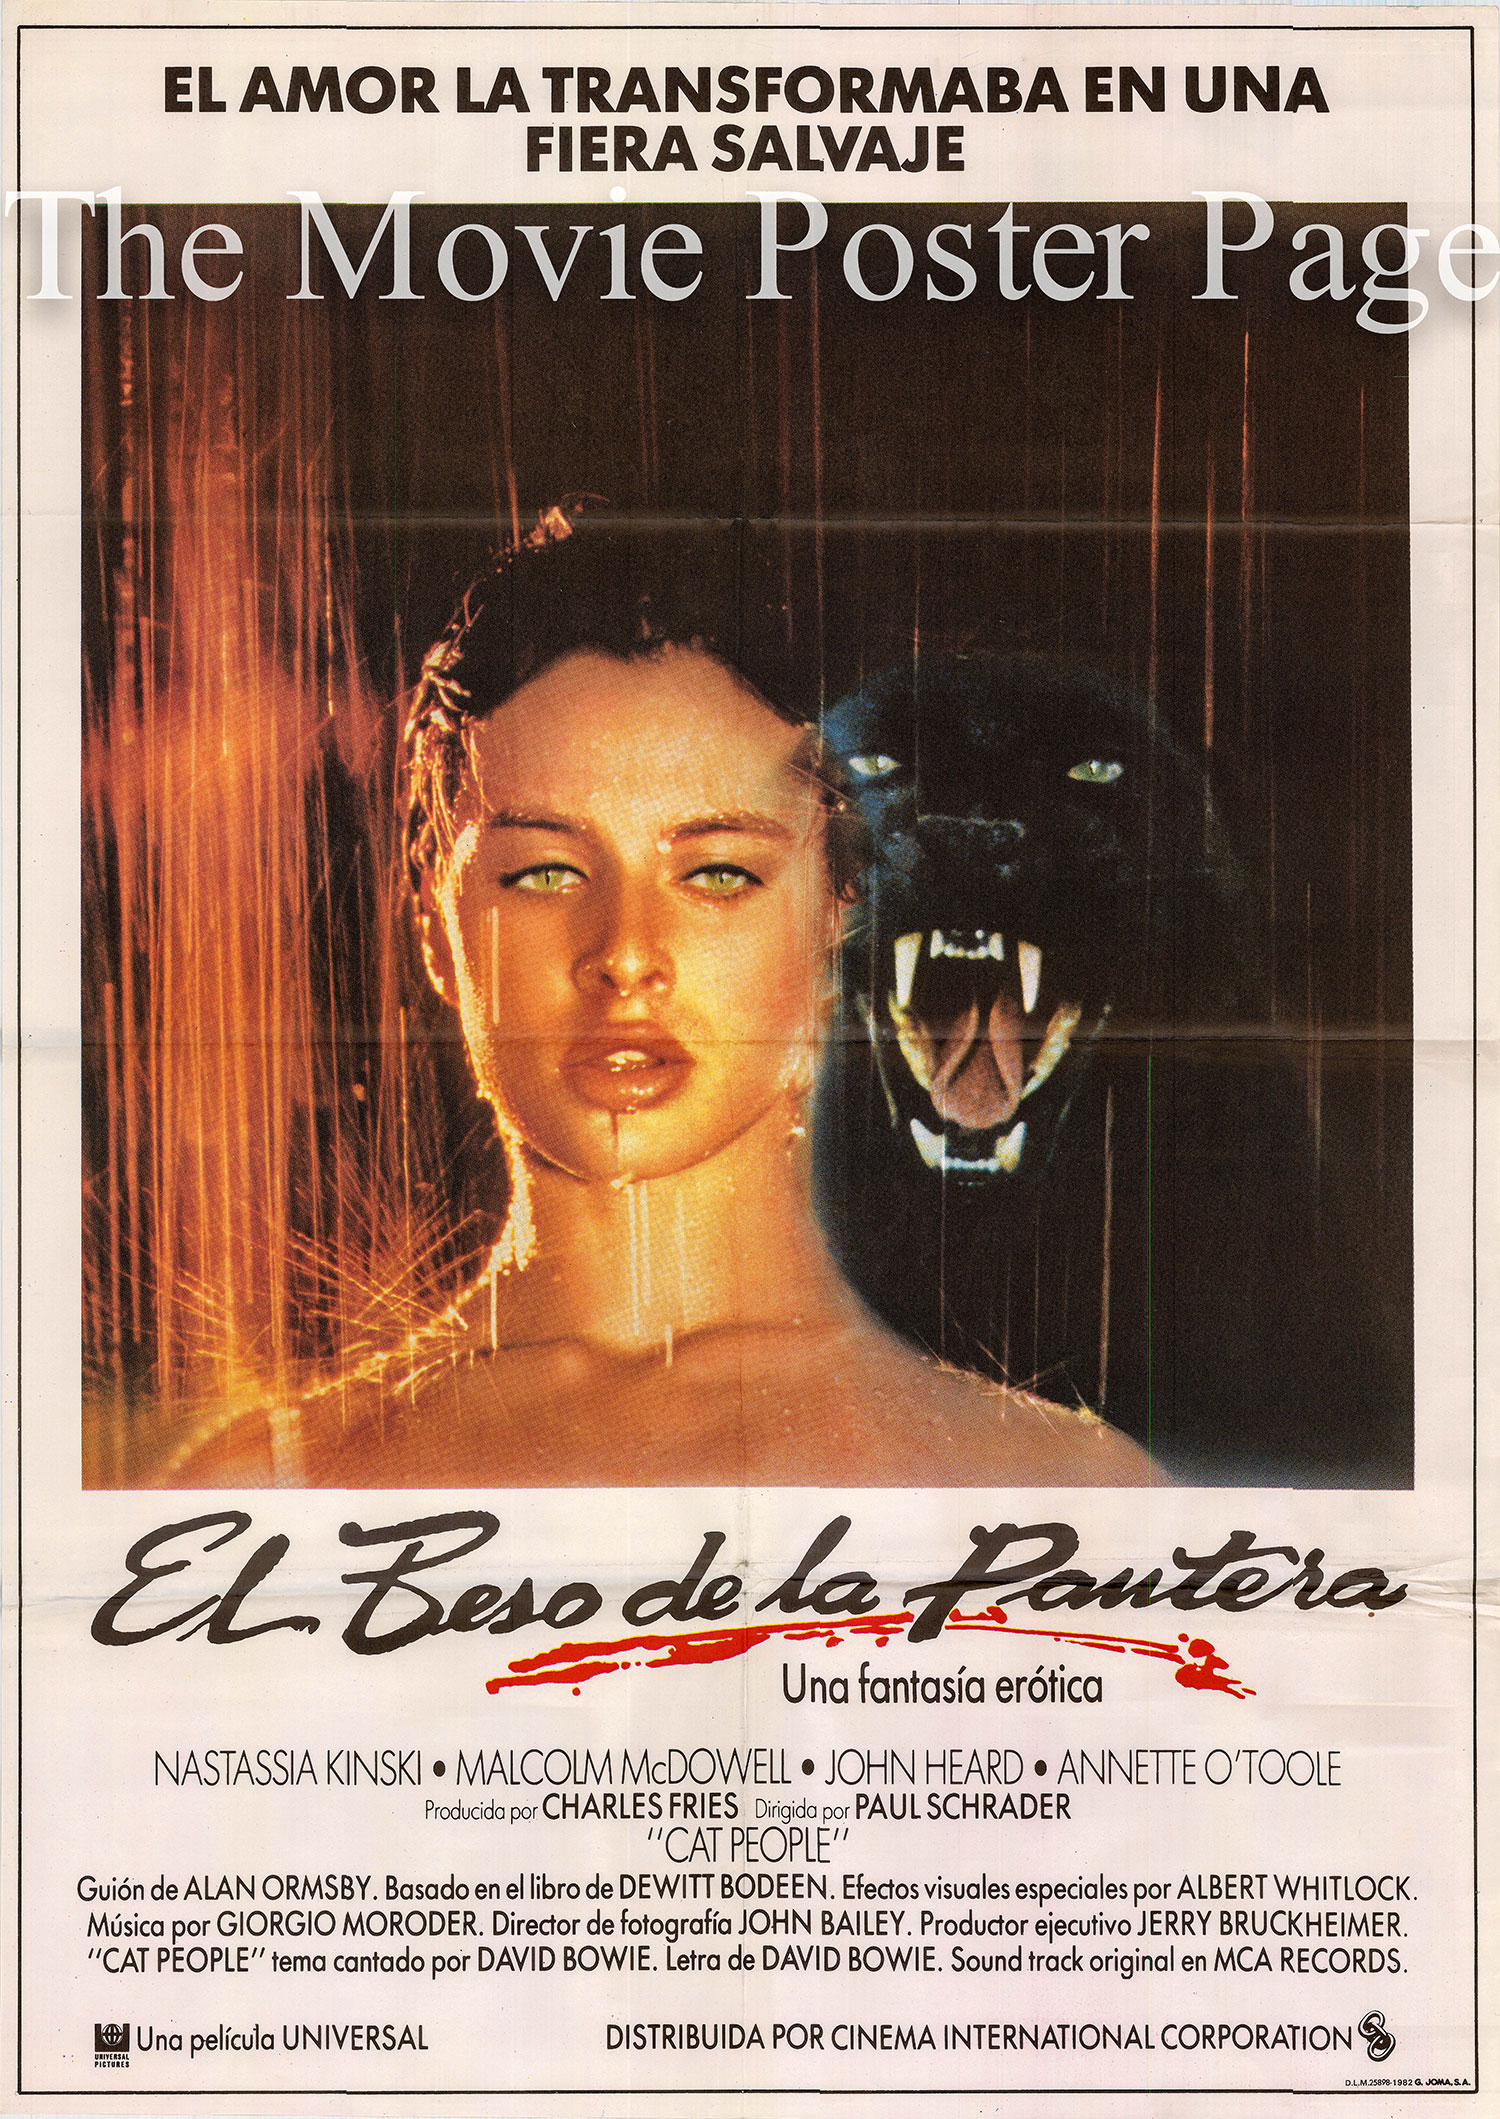 Pictured is a Spanish promotional one-sheet poster for the 1982 Paul Schrader film Cat People starring Nastassja Kinski.